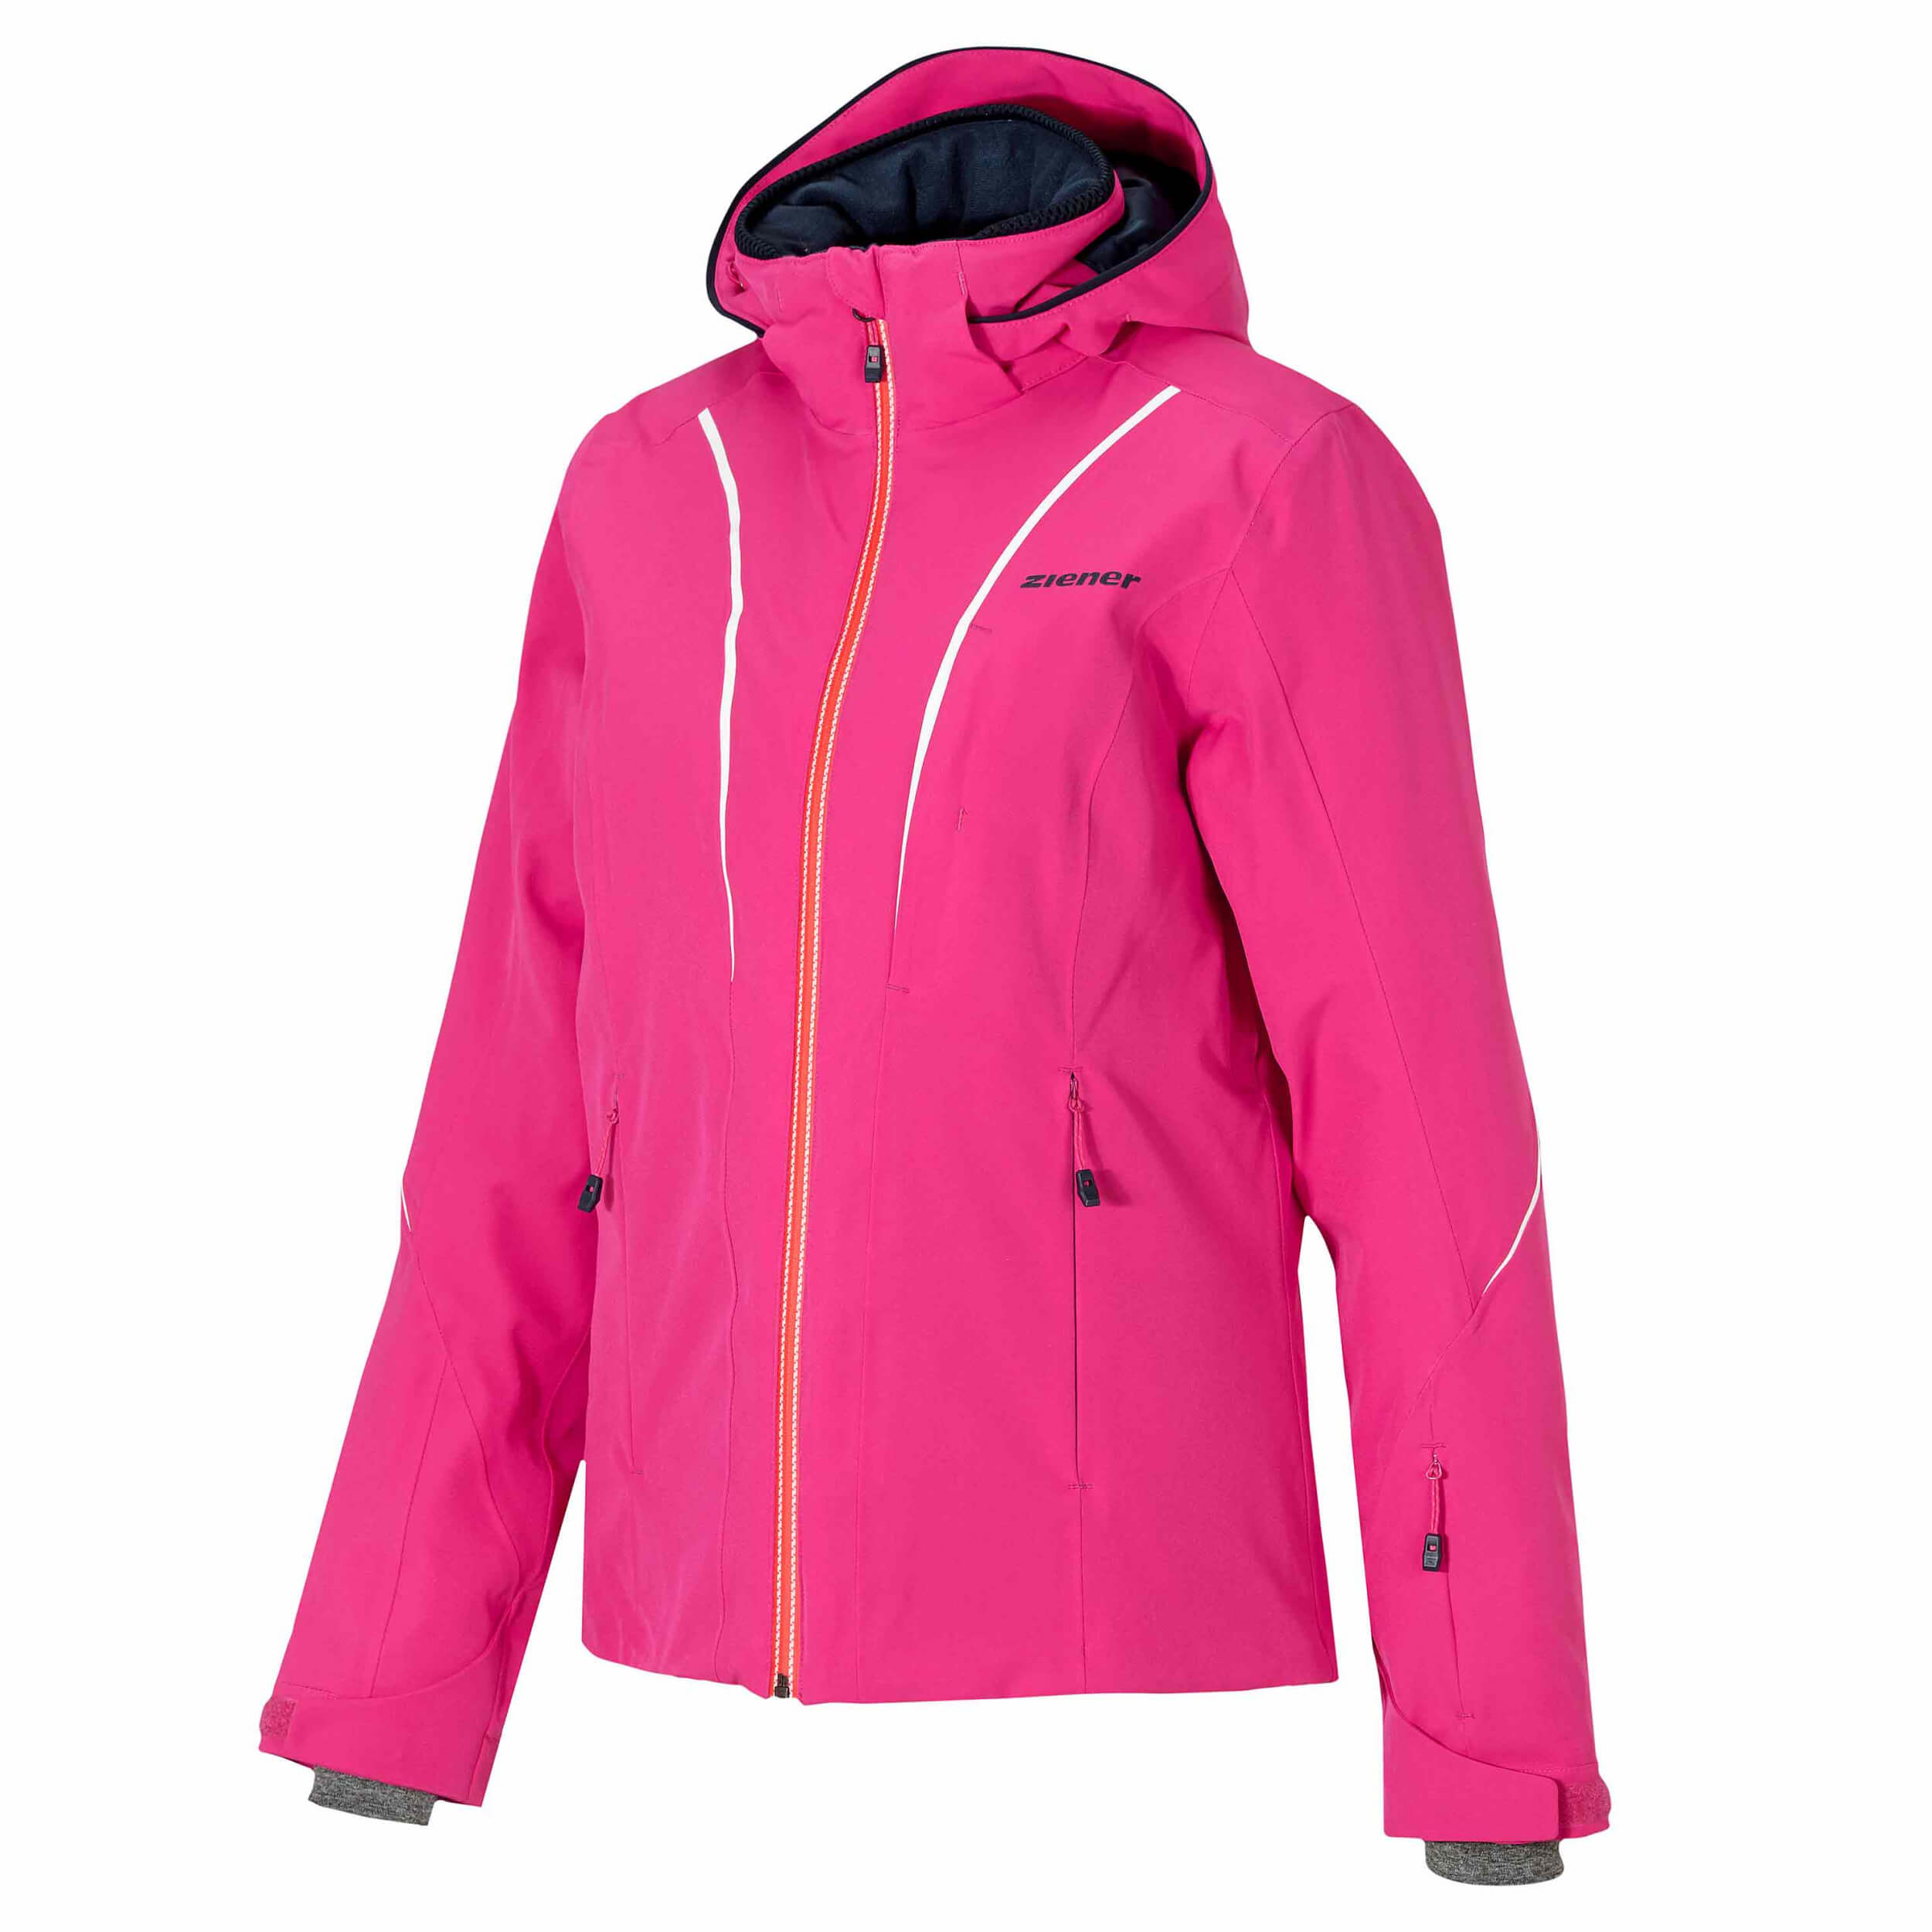 Details about Ziener Ladies Ski Jacket Tilda Lady Aquashield Pink 861 NEW show original title